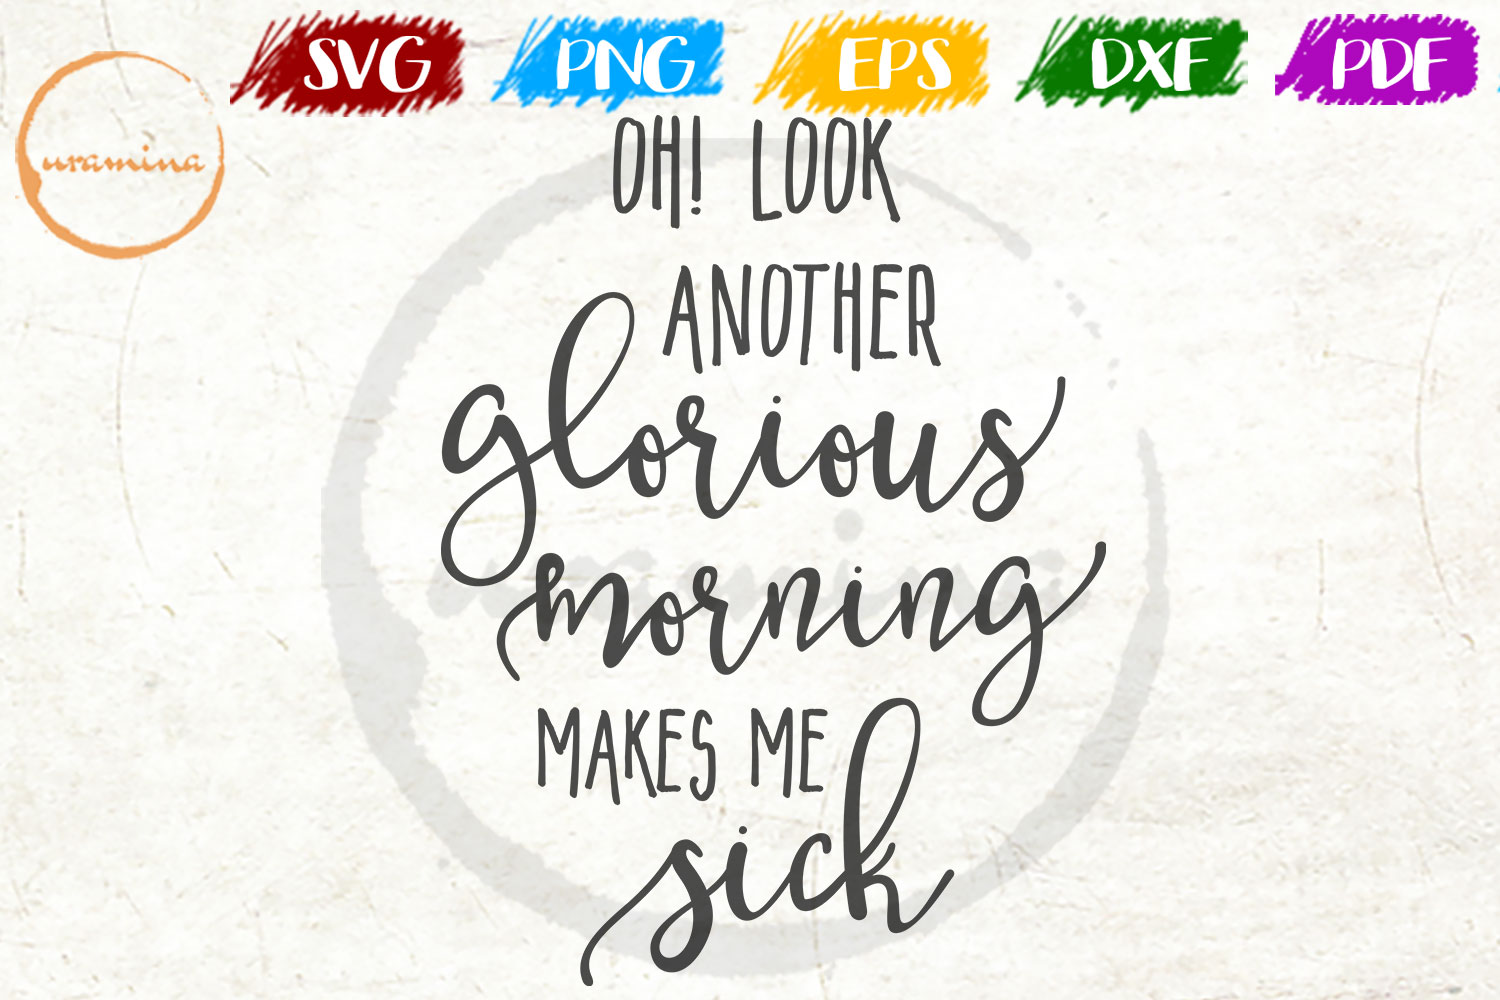 Download Free Oh Look Another Glorious Morning Makes Graphic By Uramina for Cricut Explore, Silhouette and other cutting machines.